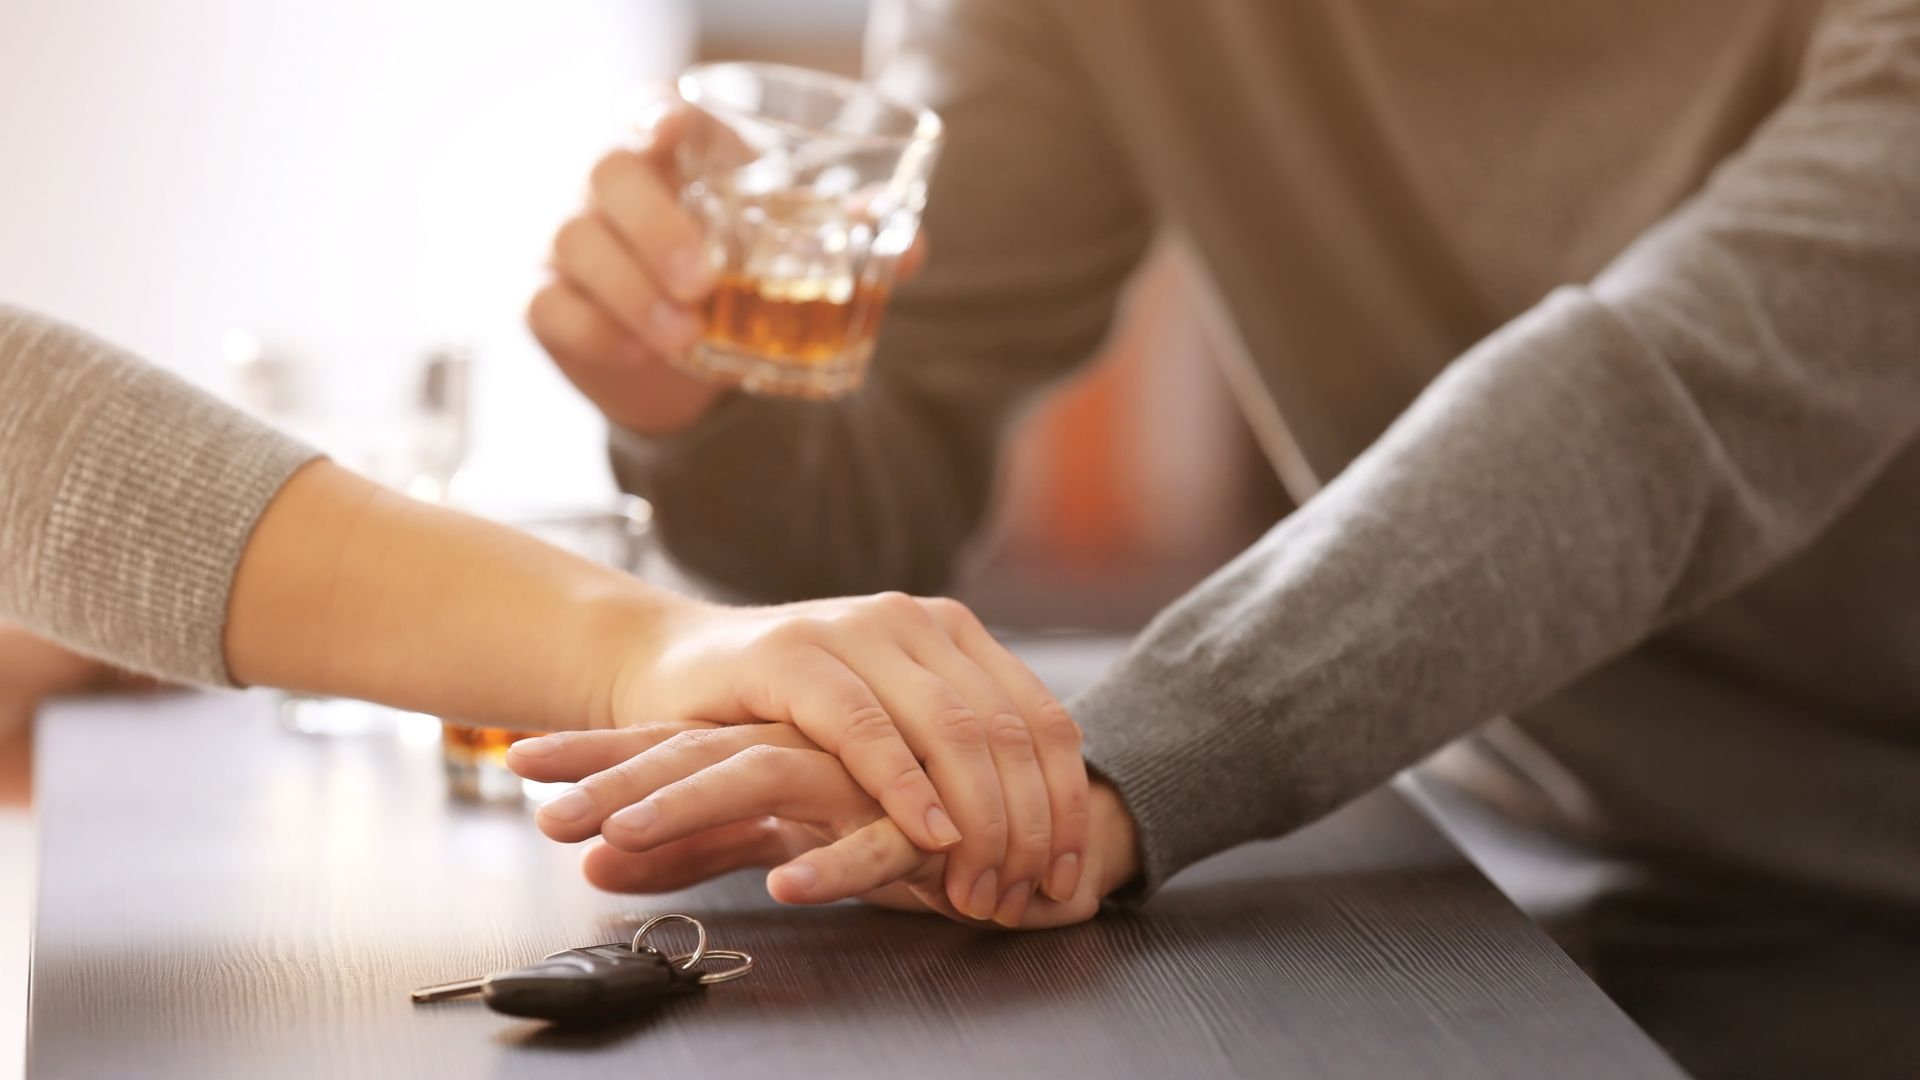 England should lower drink drive limit, scotland says